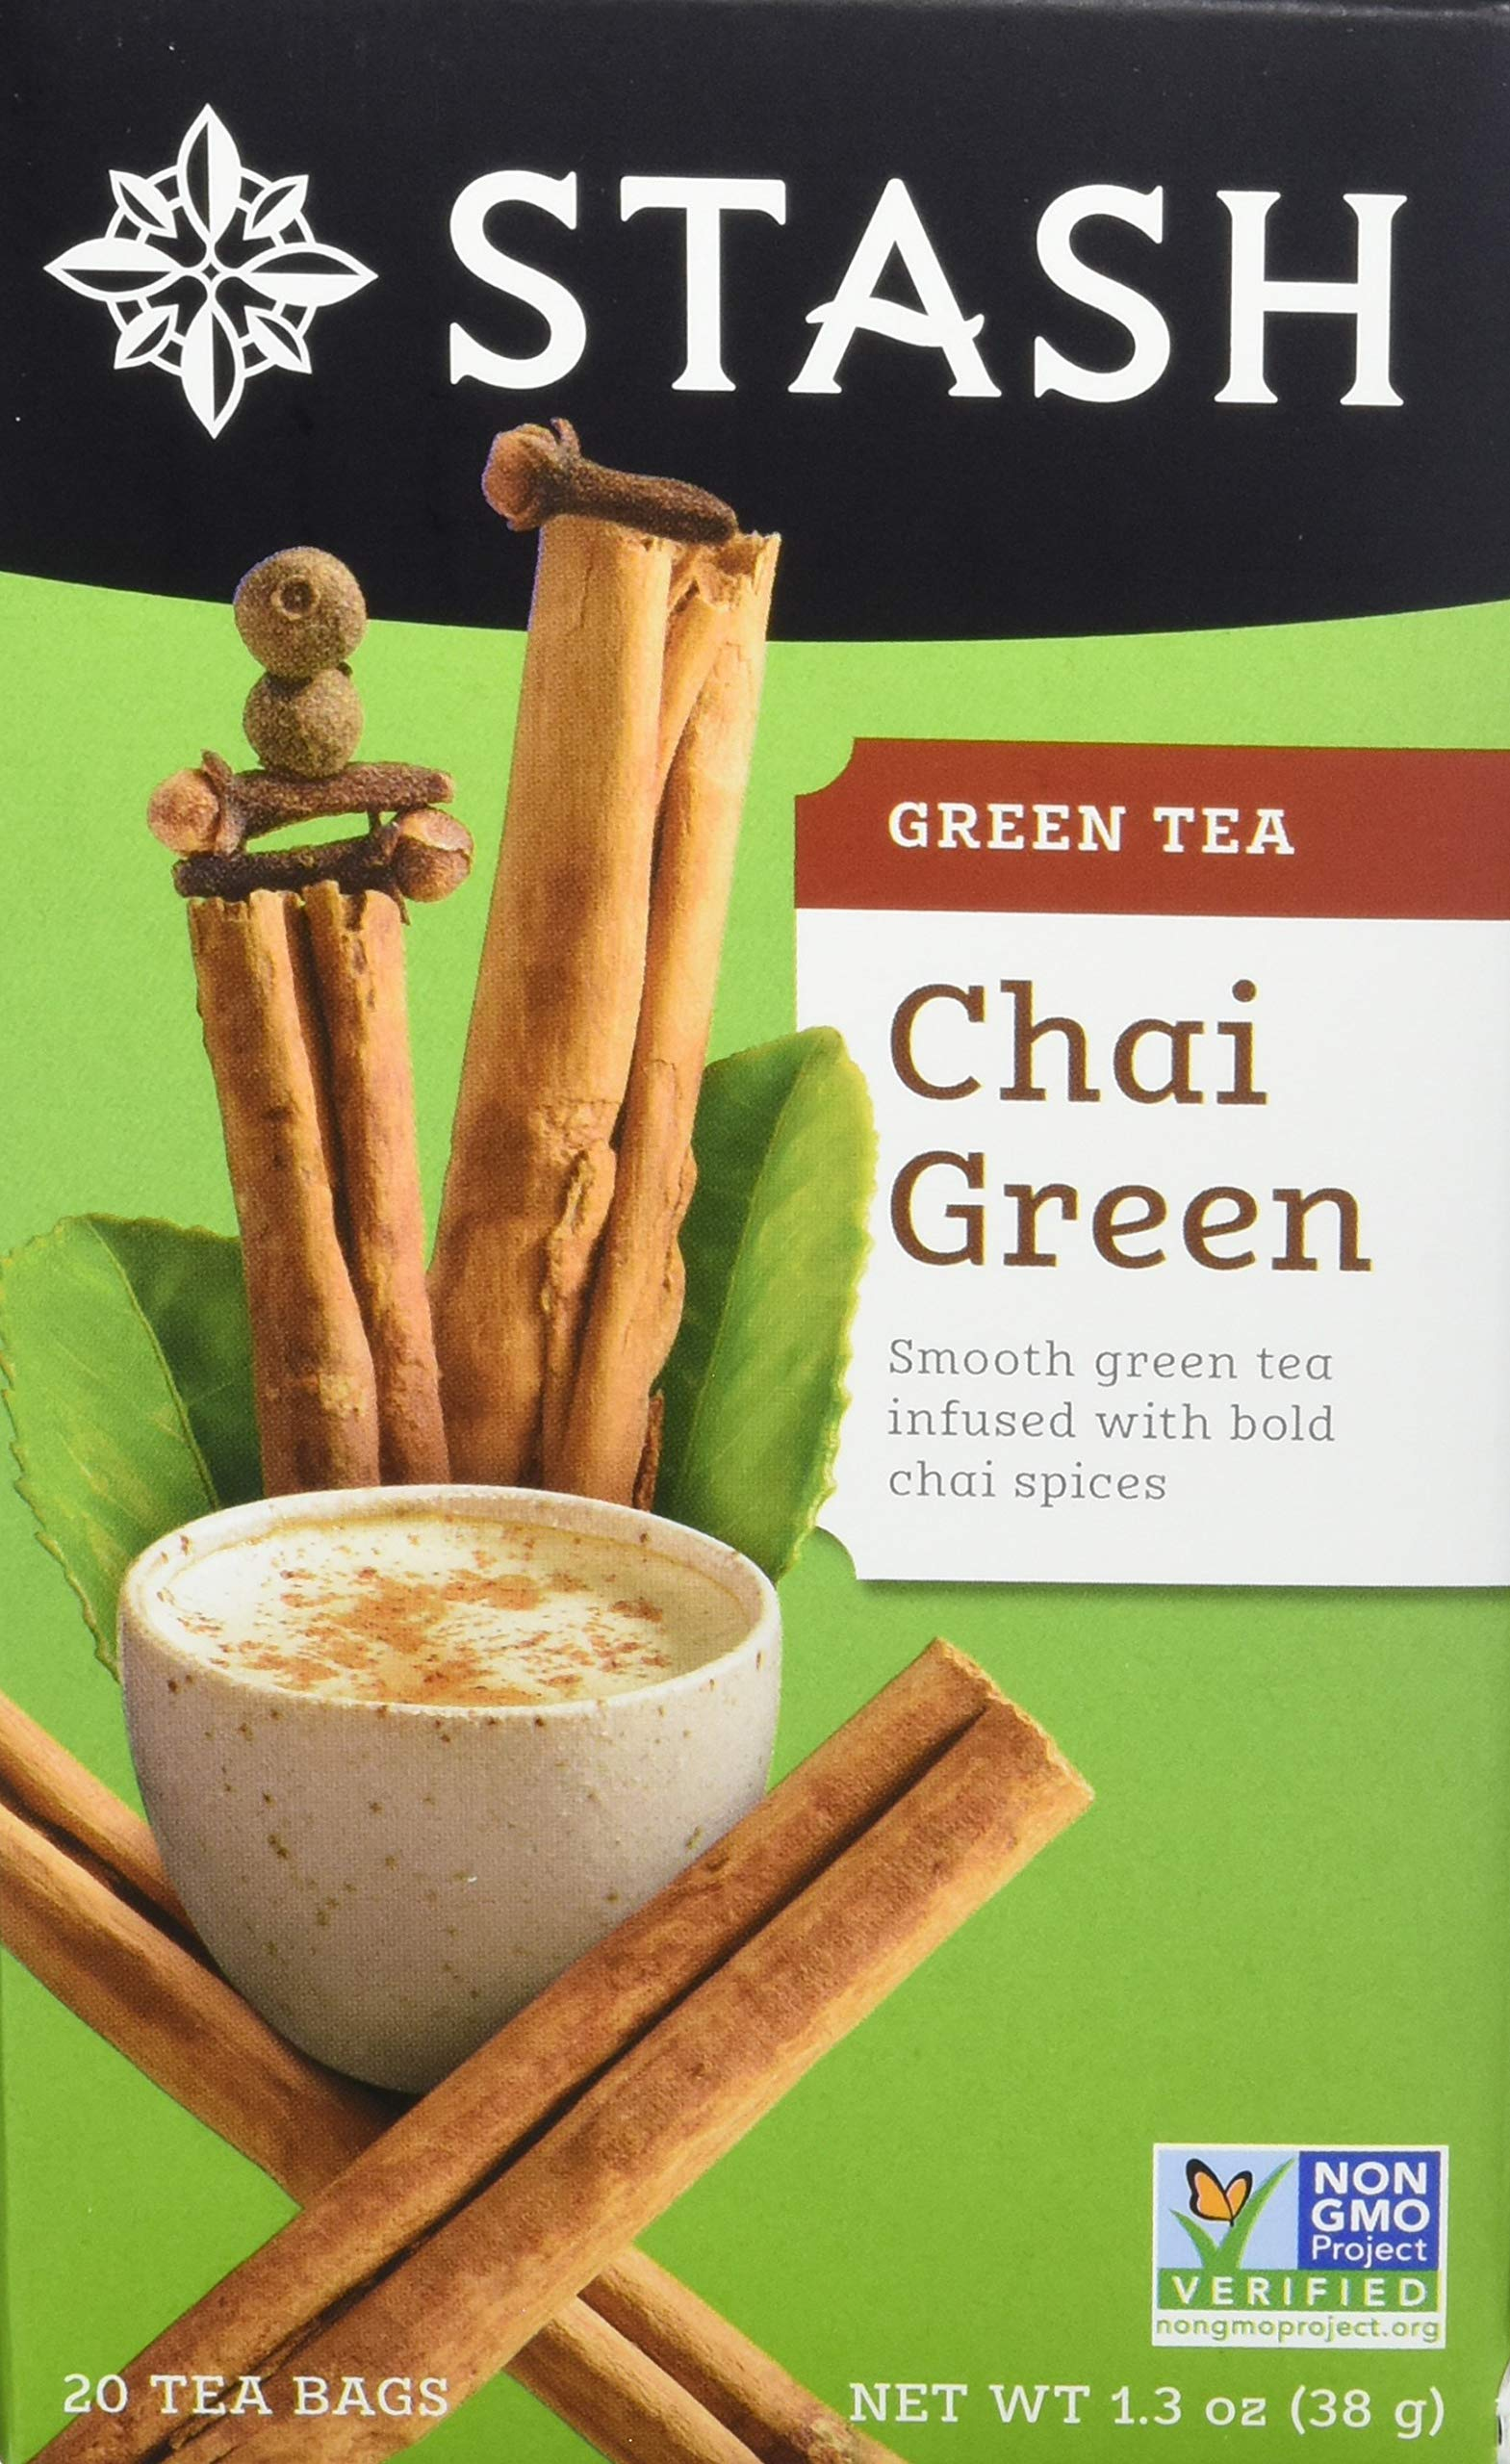 Stash Tea Green Chai Tea 20 Count Tea Bags in Foil (Pack of 6) Individual Spiced Green Tea Bags for Use in Teapots Mugs or Teacups, Brew Hot Tea or Iced Tea, Add Milk for Chai Latte by Stash Tea